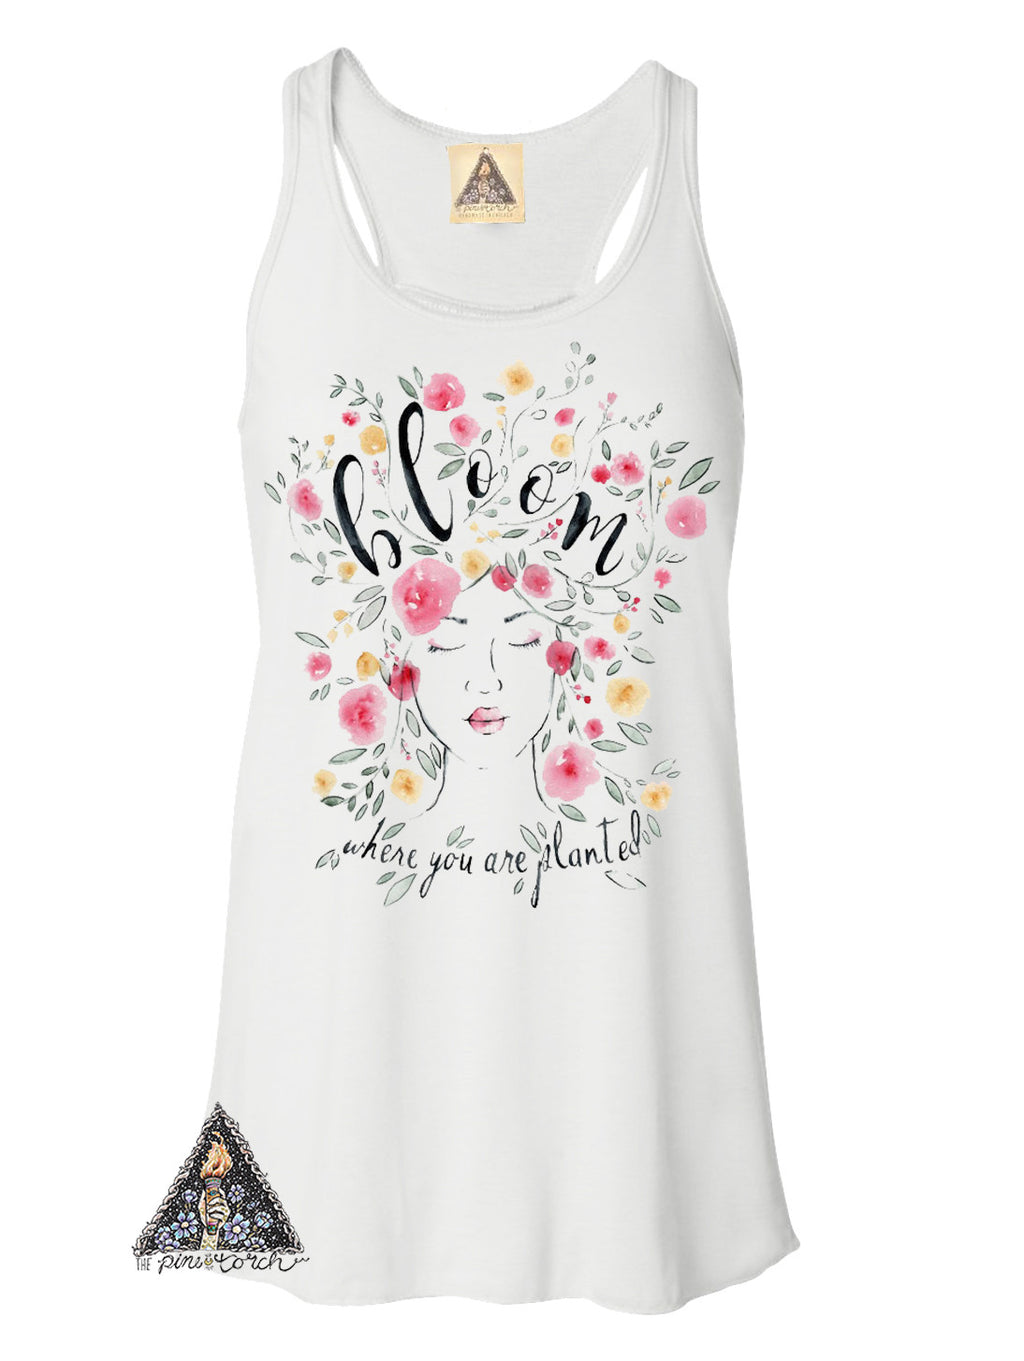 « BLOOM WHERE YOU ARE PLANTED » WOMEN'S TANK